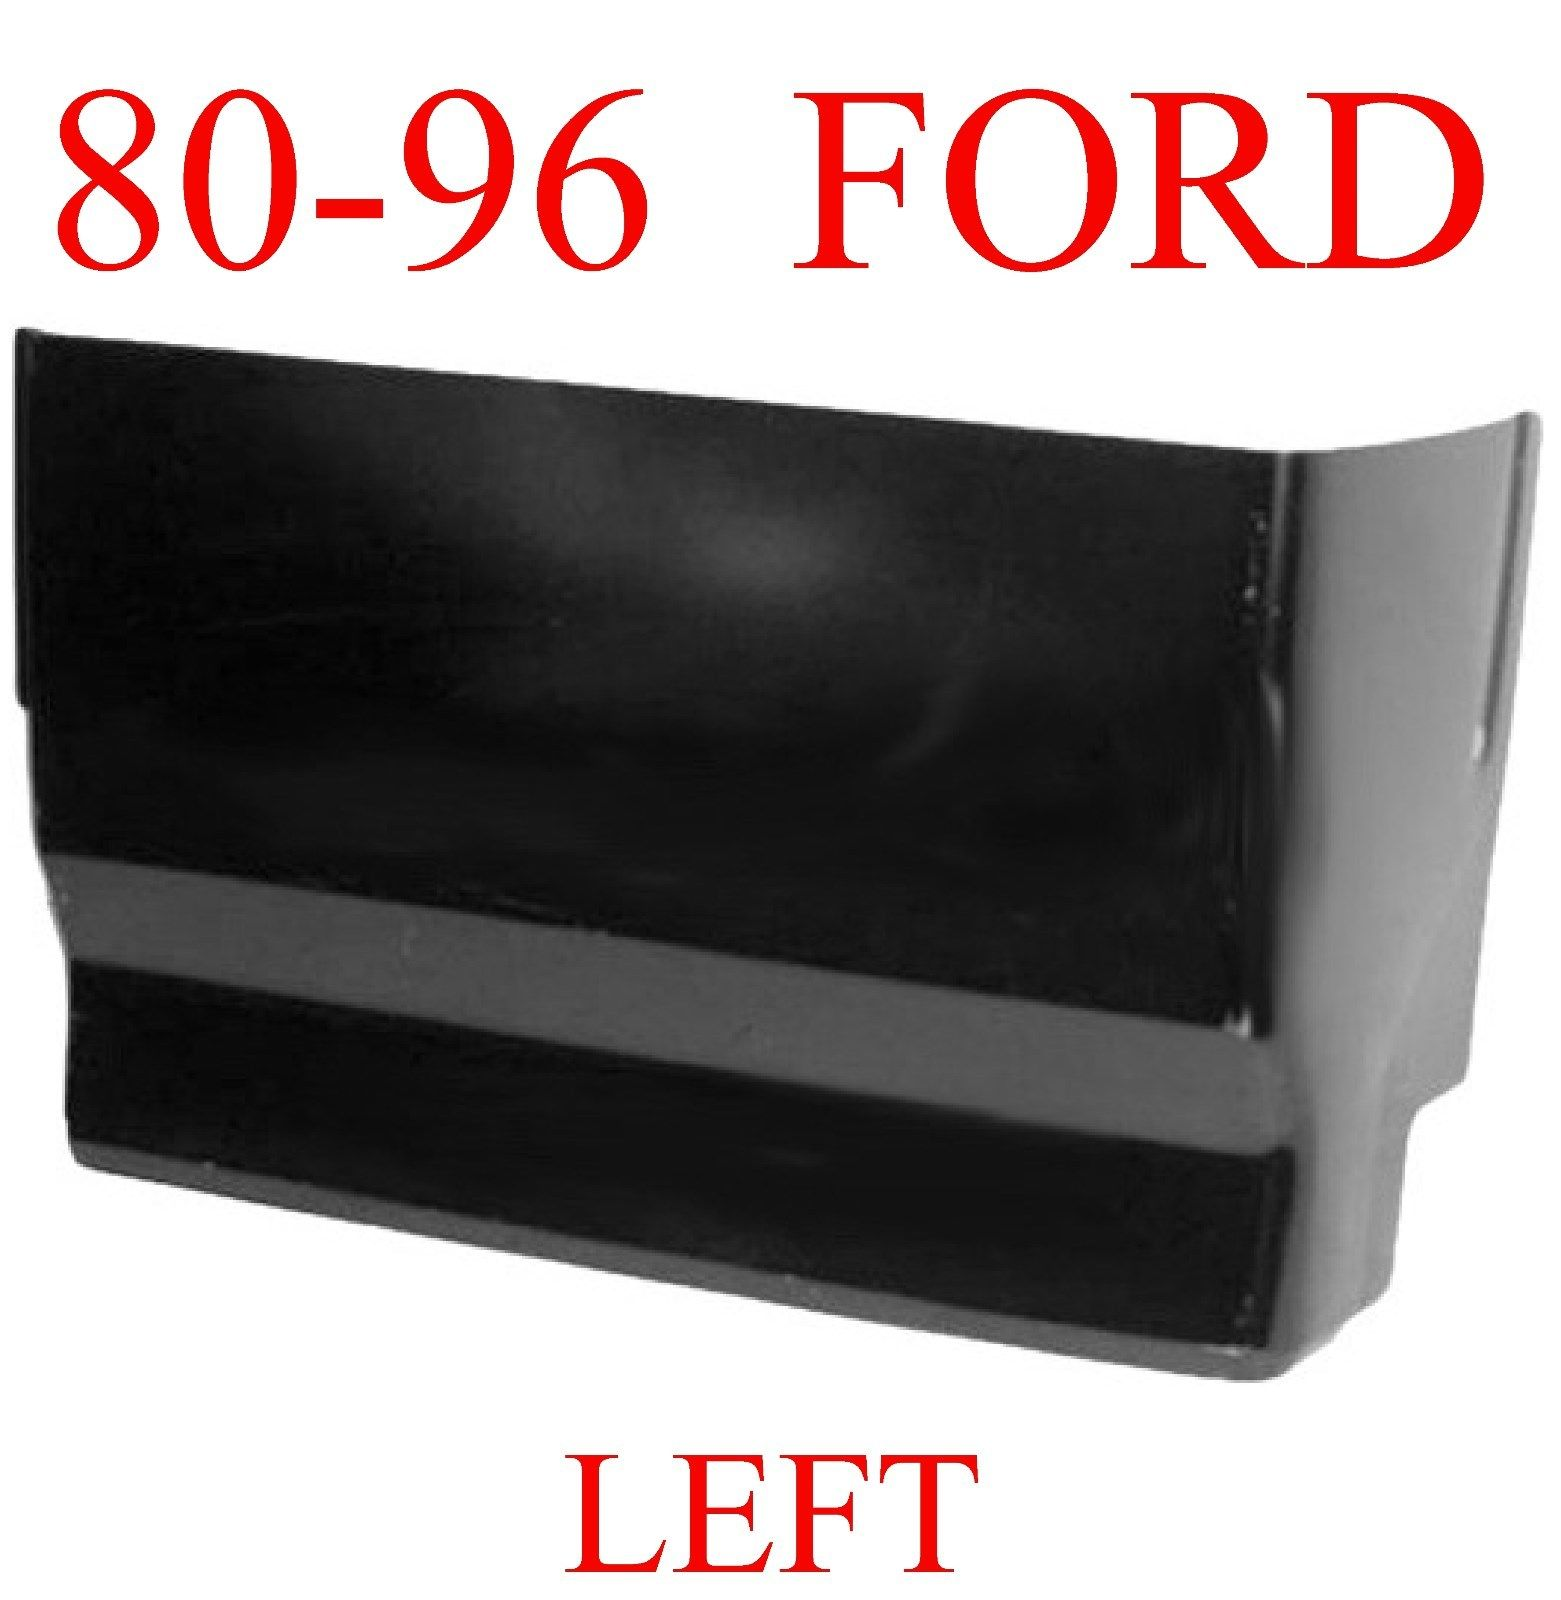 80-96 Ford LEFT Extended Super Cab Corner,